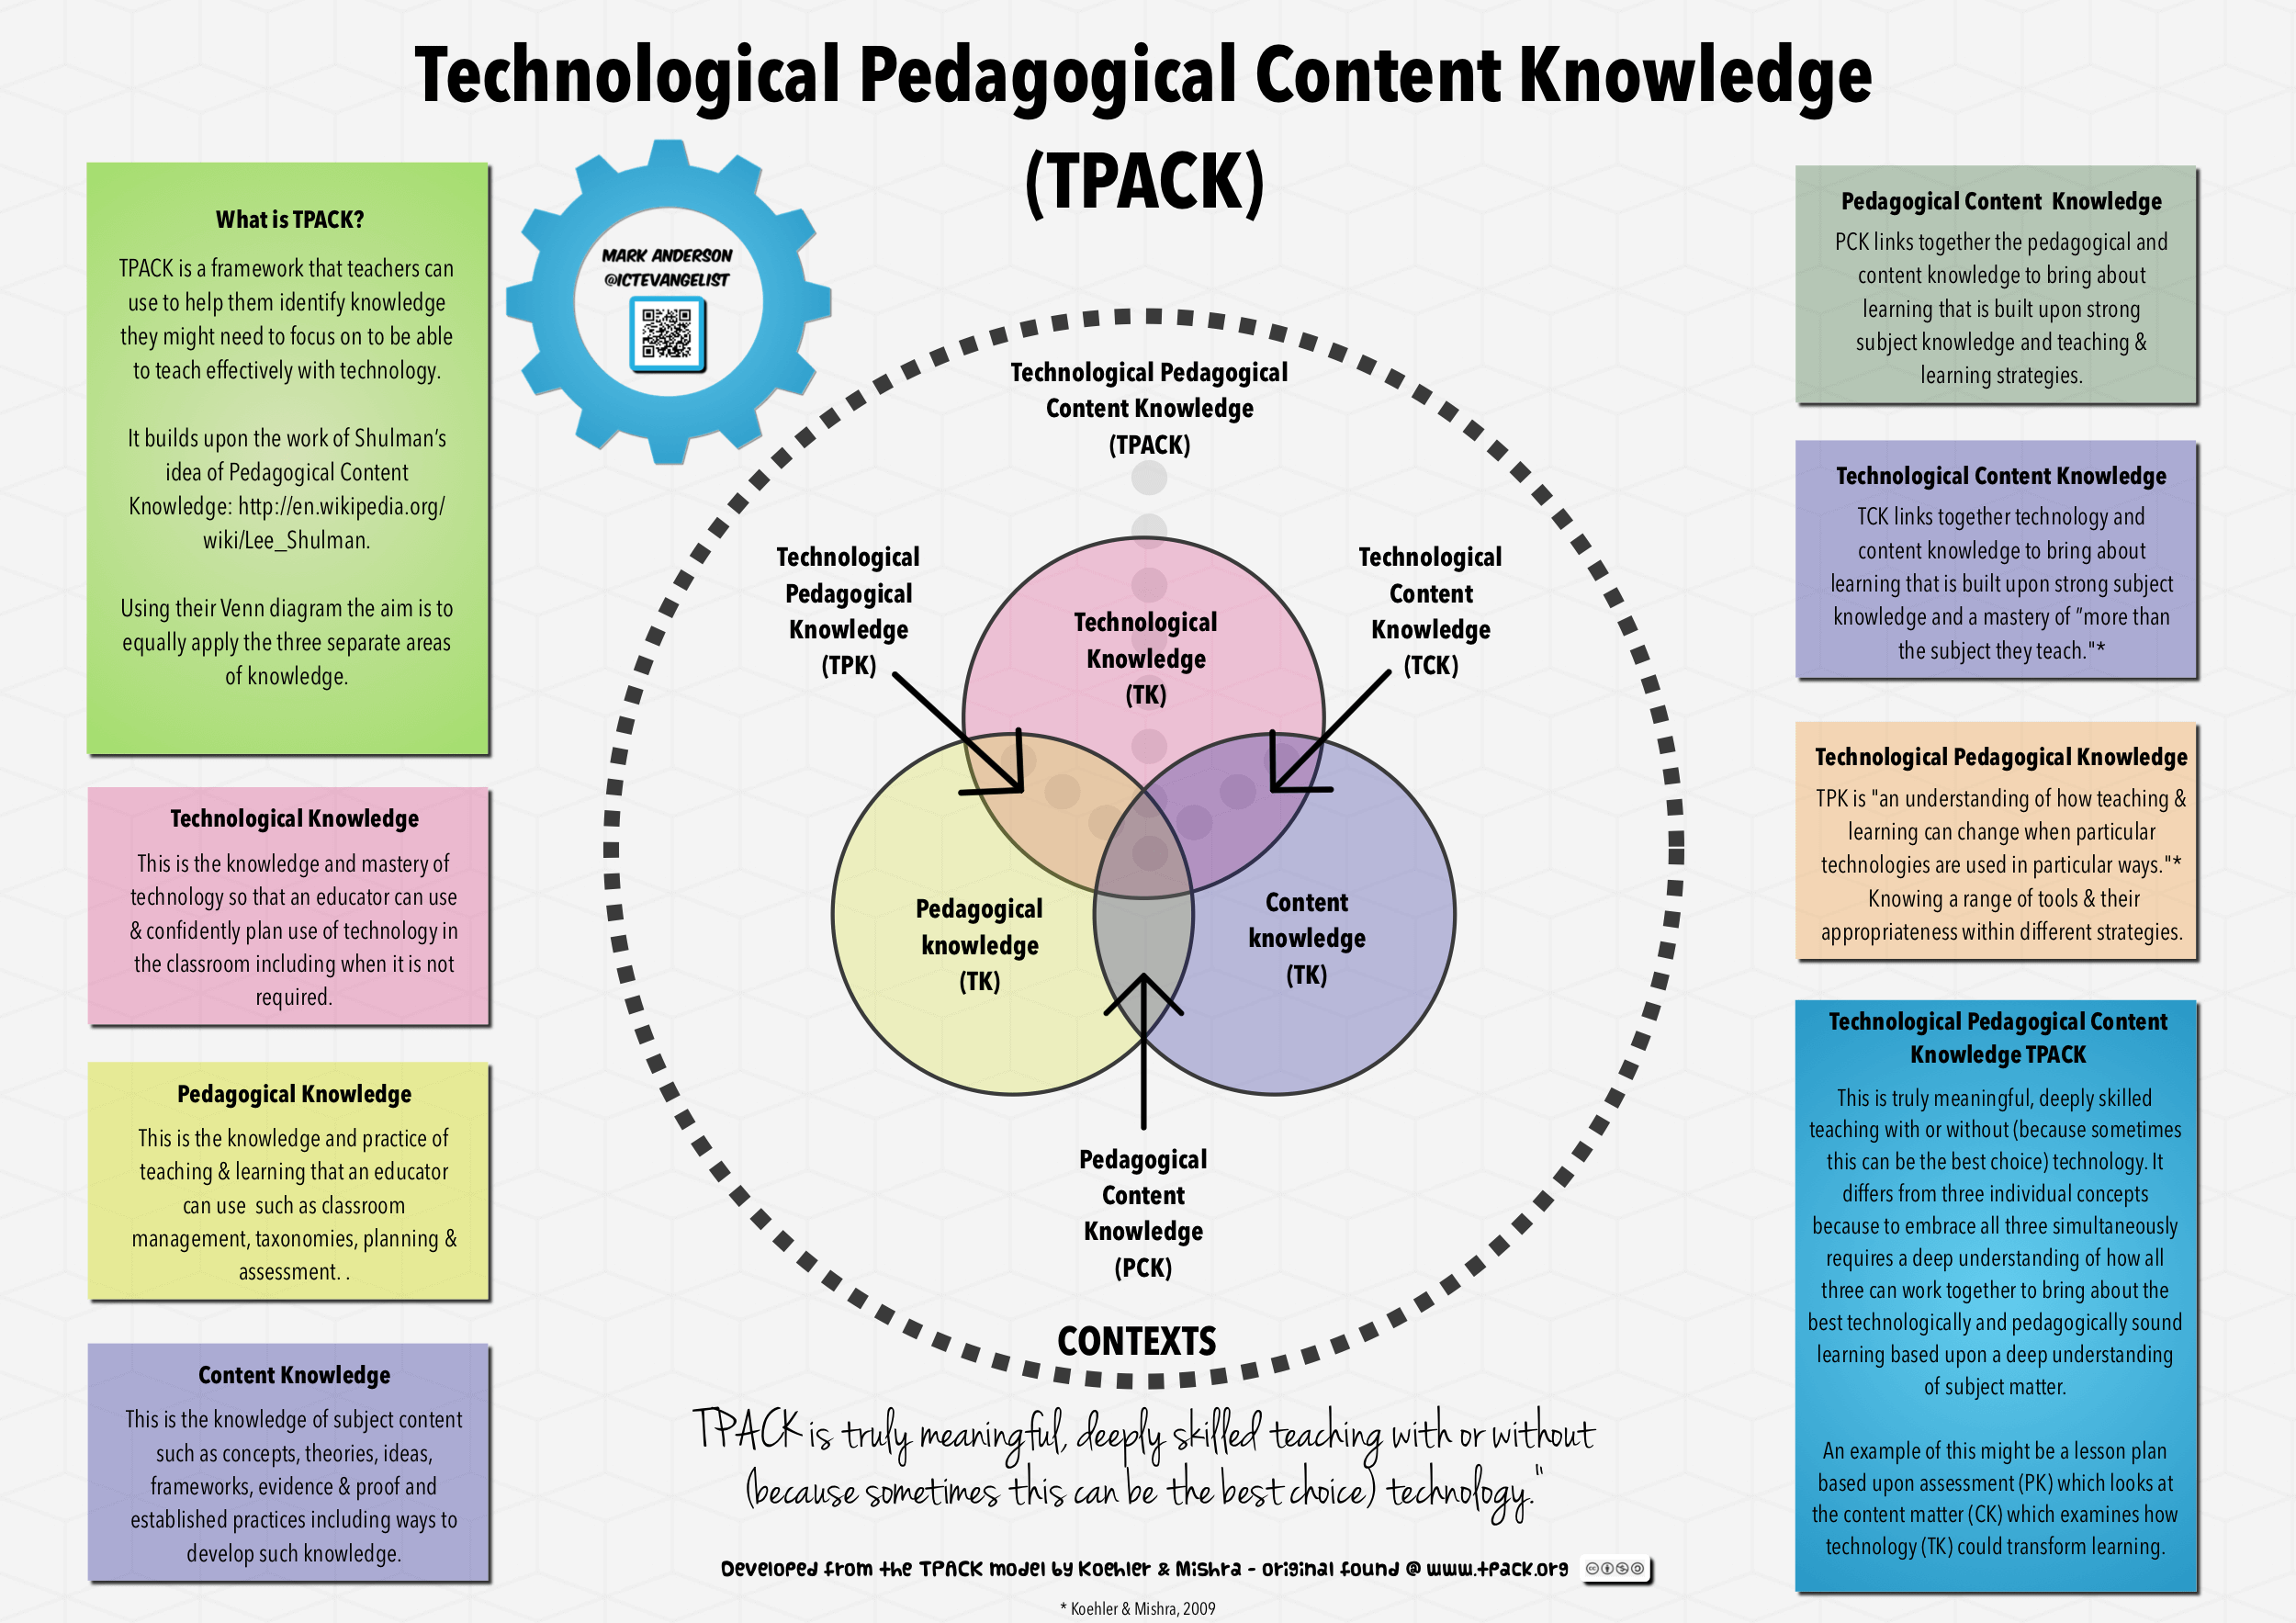 Technological pedagogical content knowledge (tpack) framework.